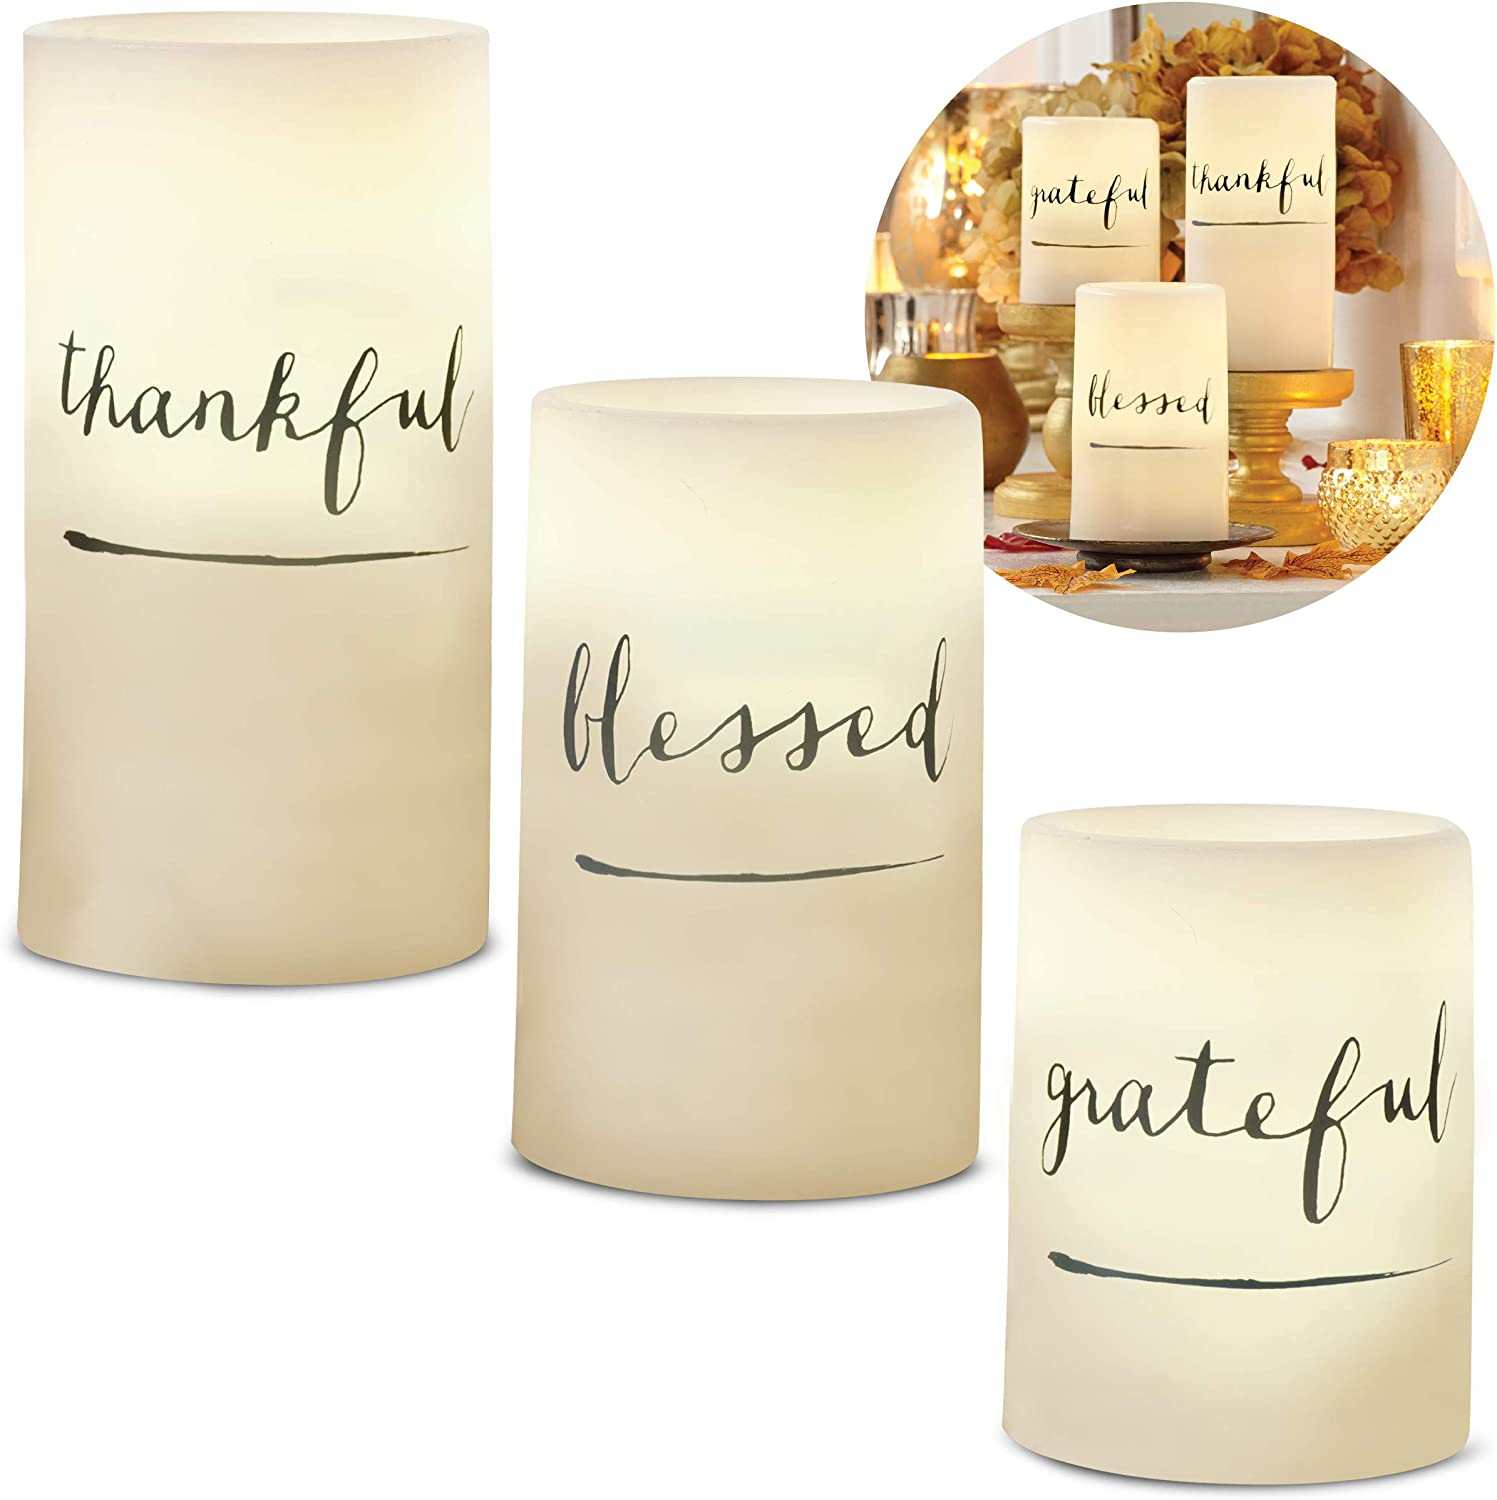 3-Piece Flickering LED Candle Set with Daily Timer by Order Home Collection, Flameless Candles, Real Wax, Battery Powered, Light Dances and Flickers, Tiered Pillars (Grateful, Thankful, Blessed)